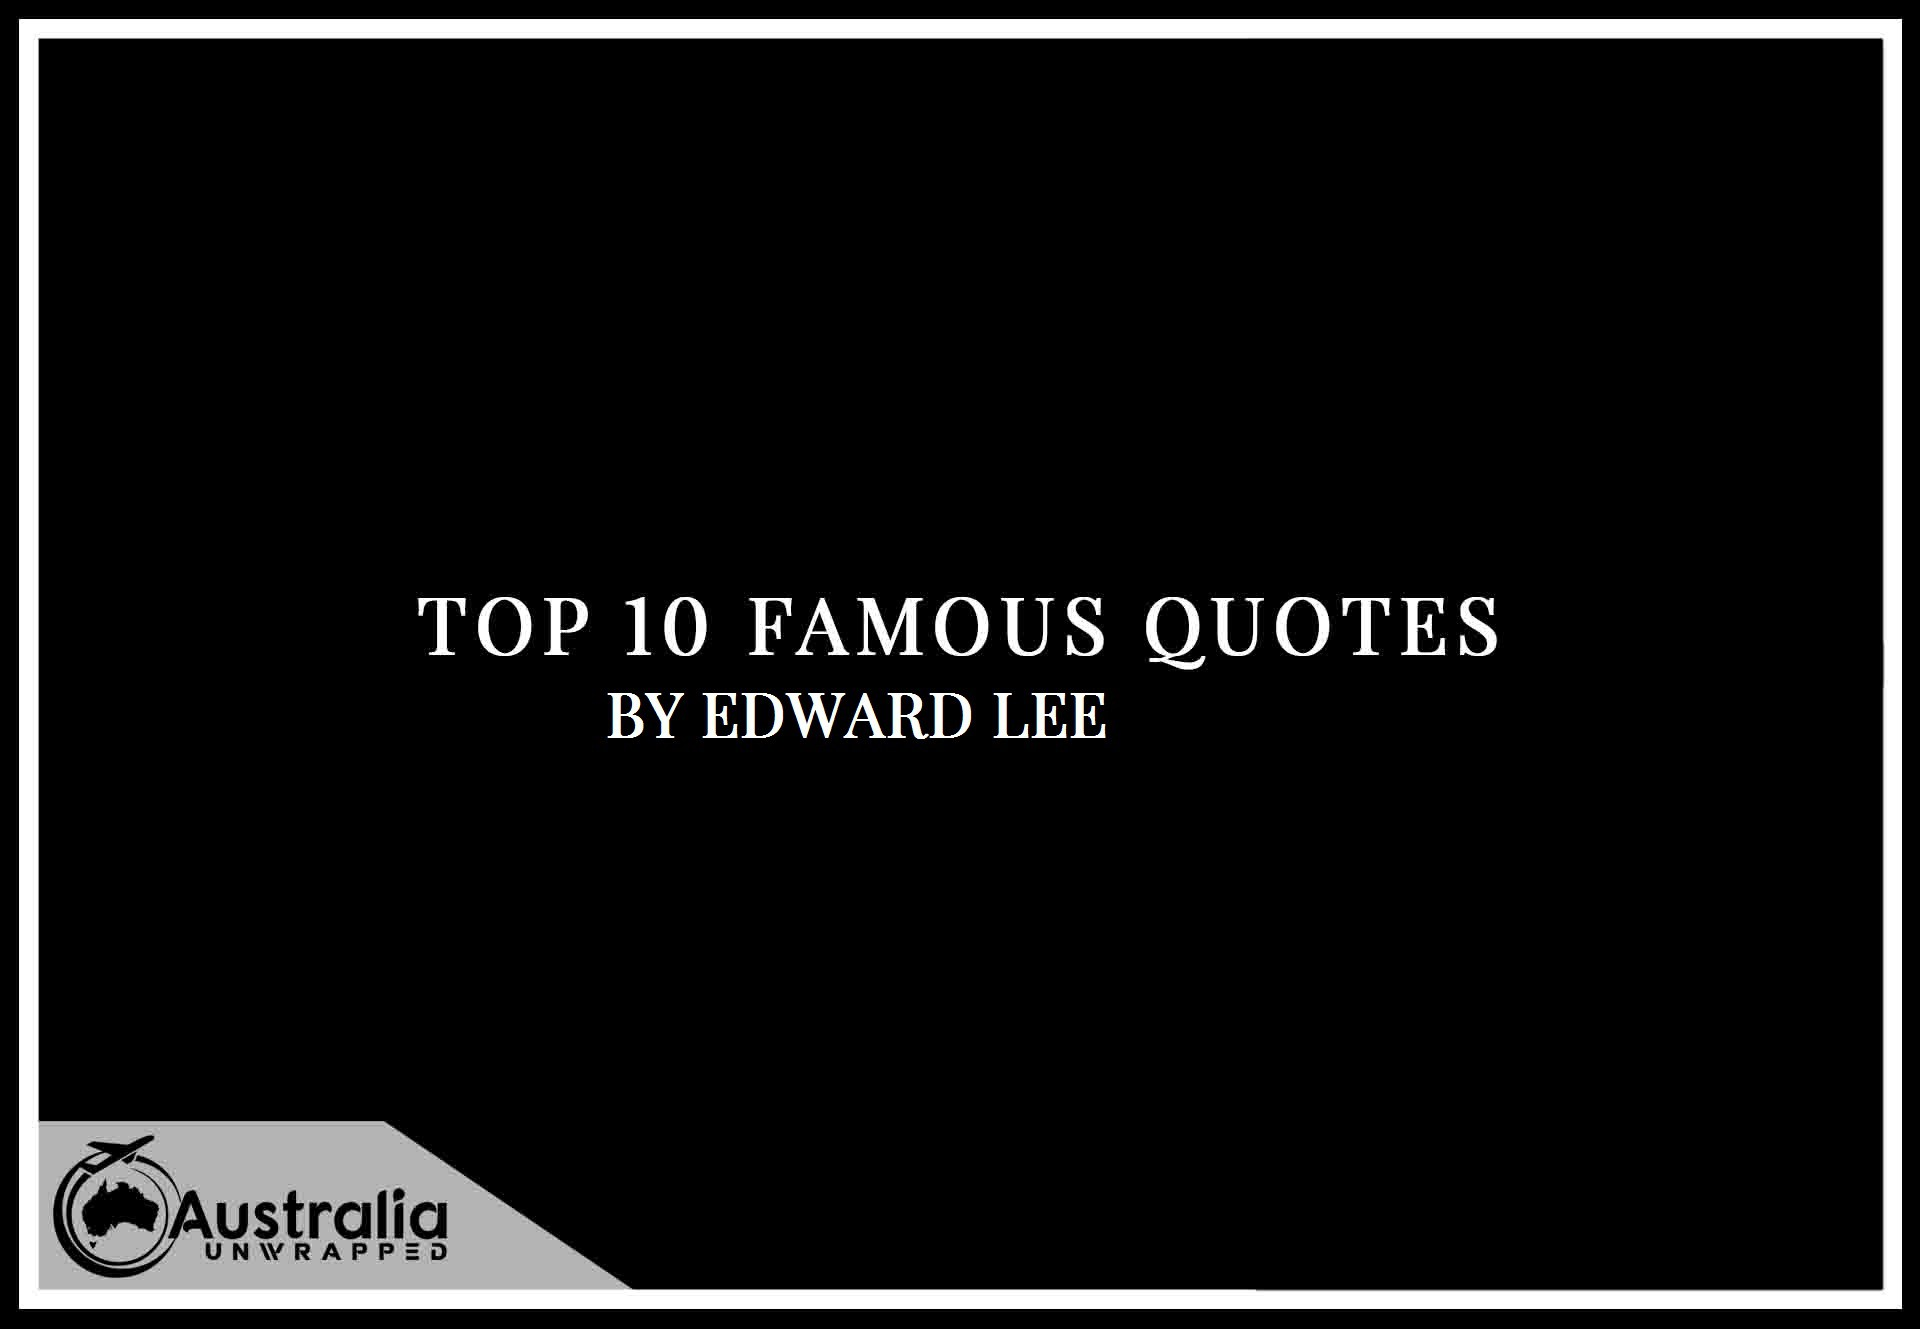 Edward Lee's Top 10 Popular and Famous Quotes